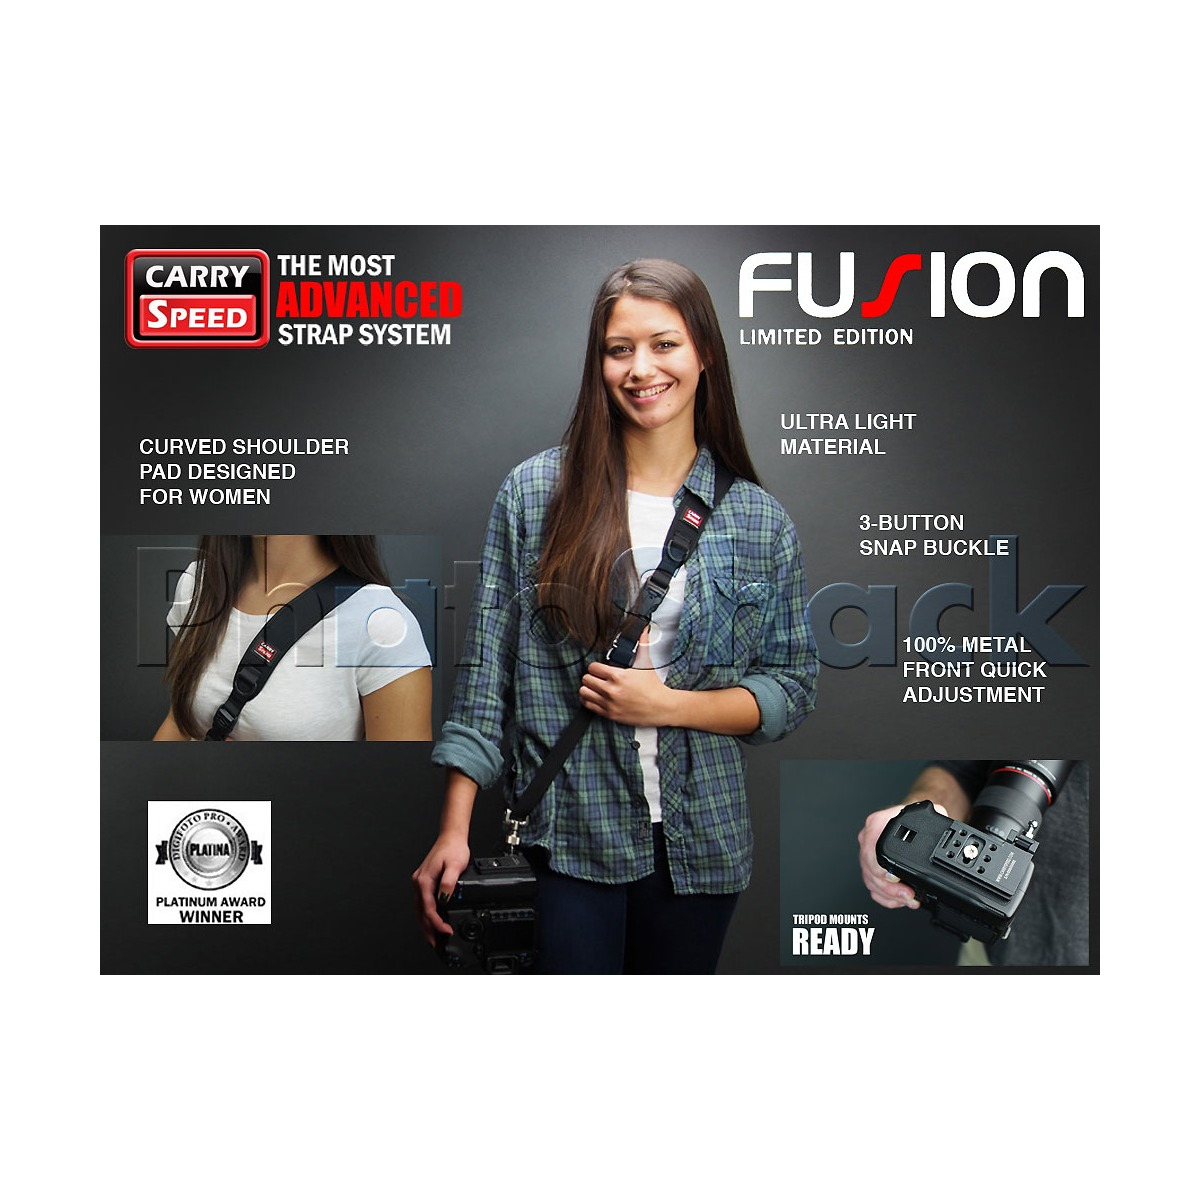 Carry Speed Fusion Camera Strap for Women (Limited Edition)